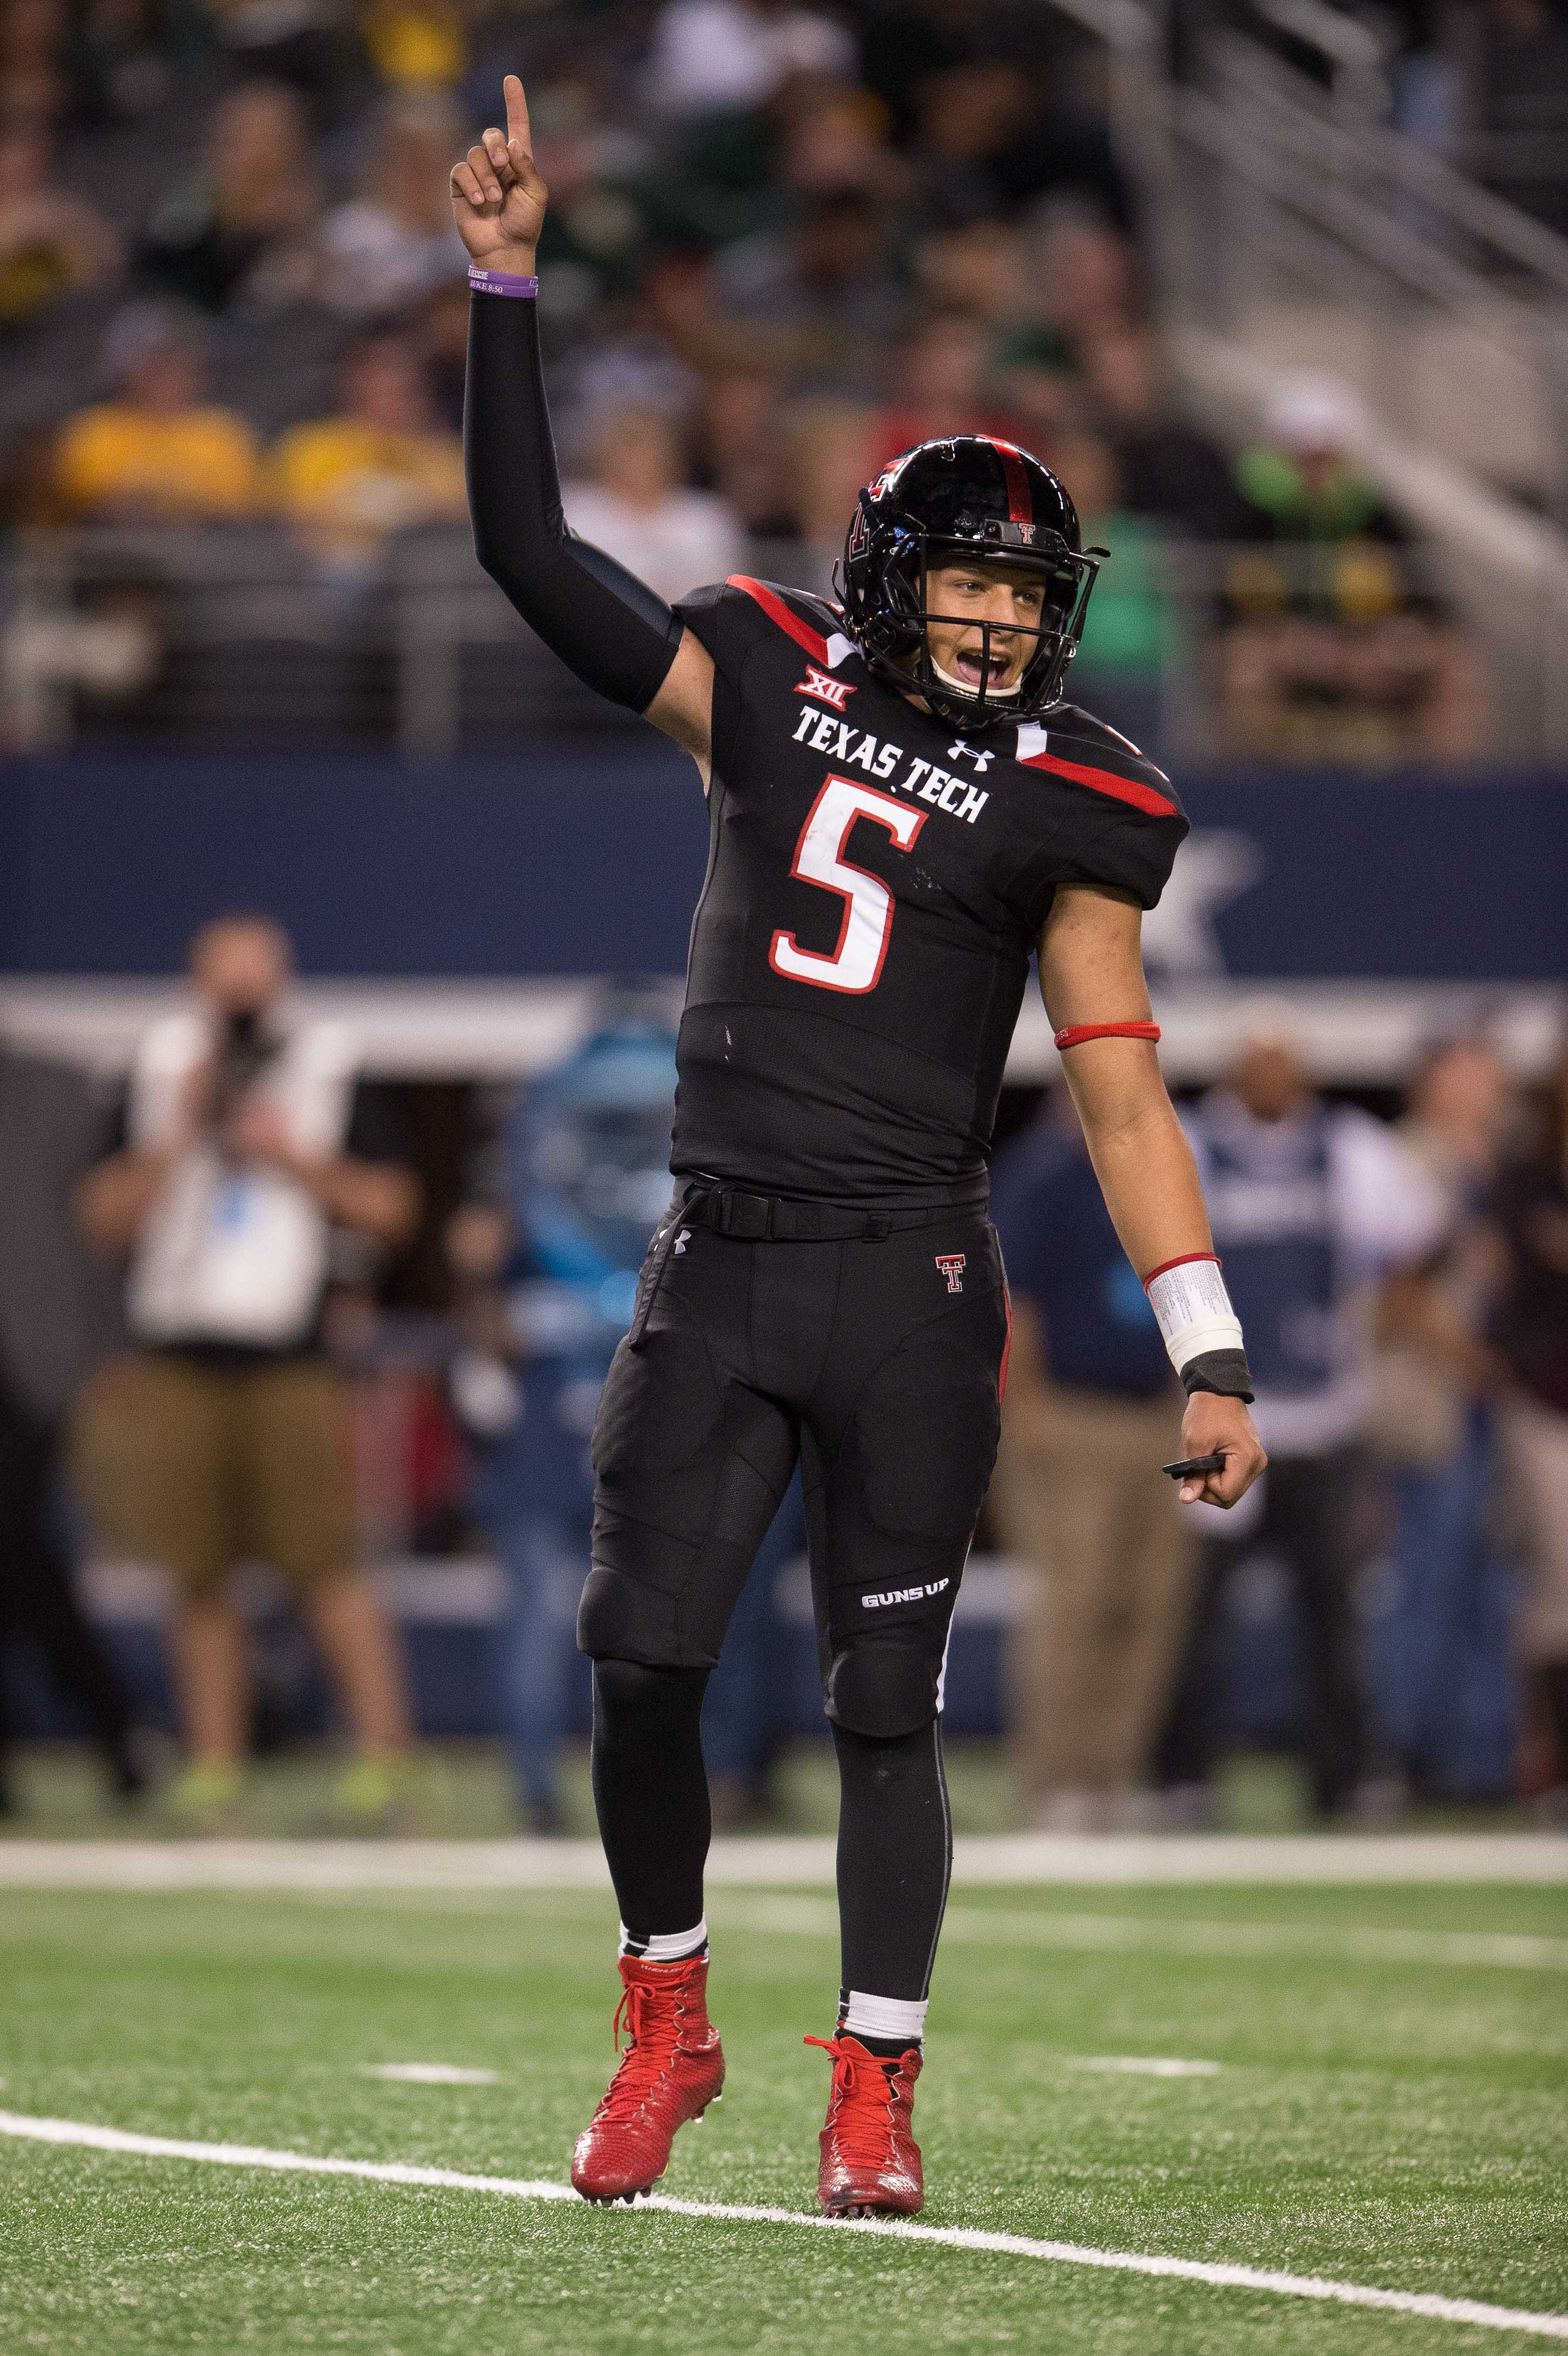 Patrick Mahomes (2901×4359) Texas tech football, Red